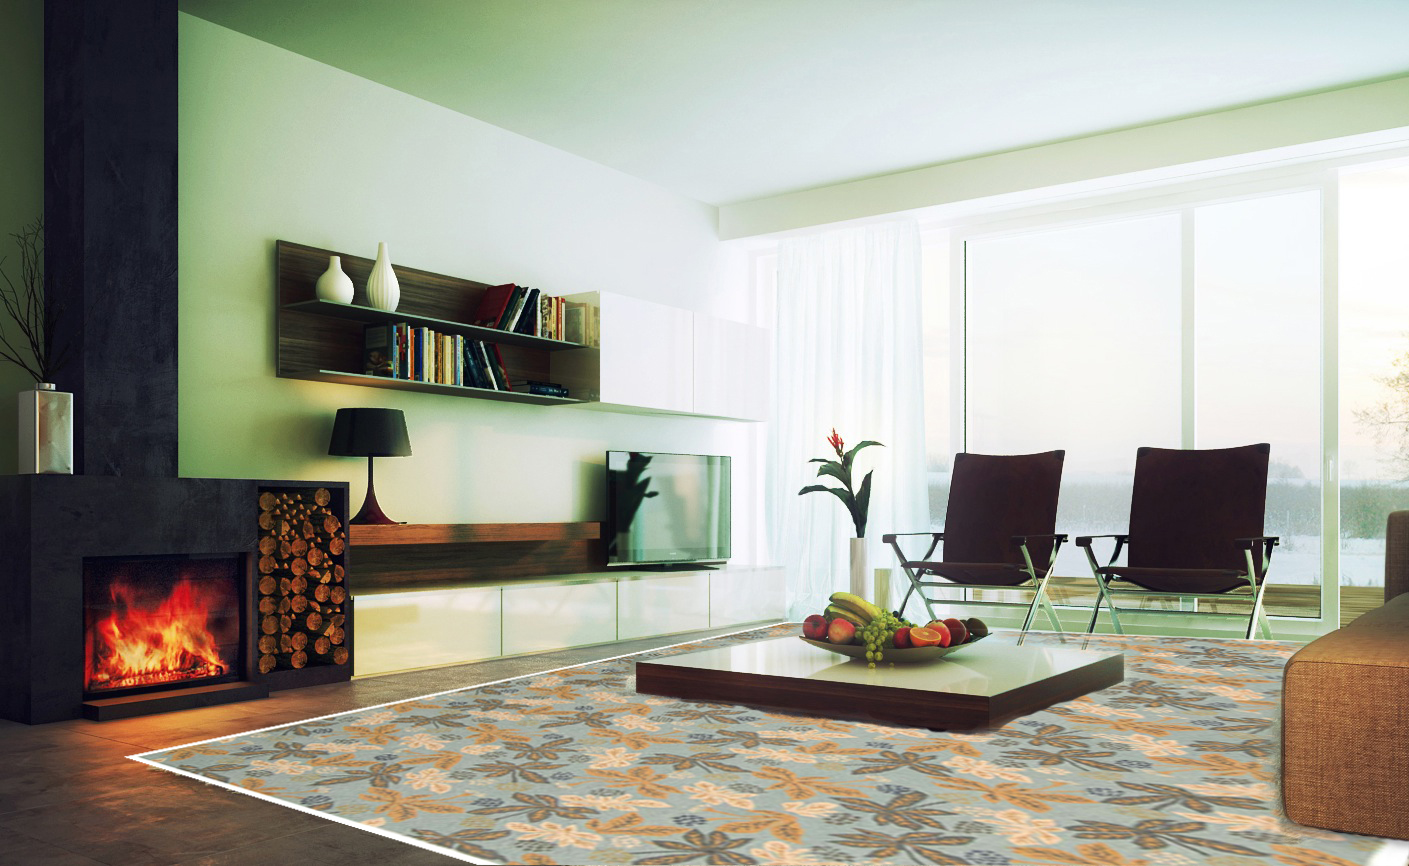 Go Crazy with Colorful Rugs! - Home Decor Expert